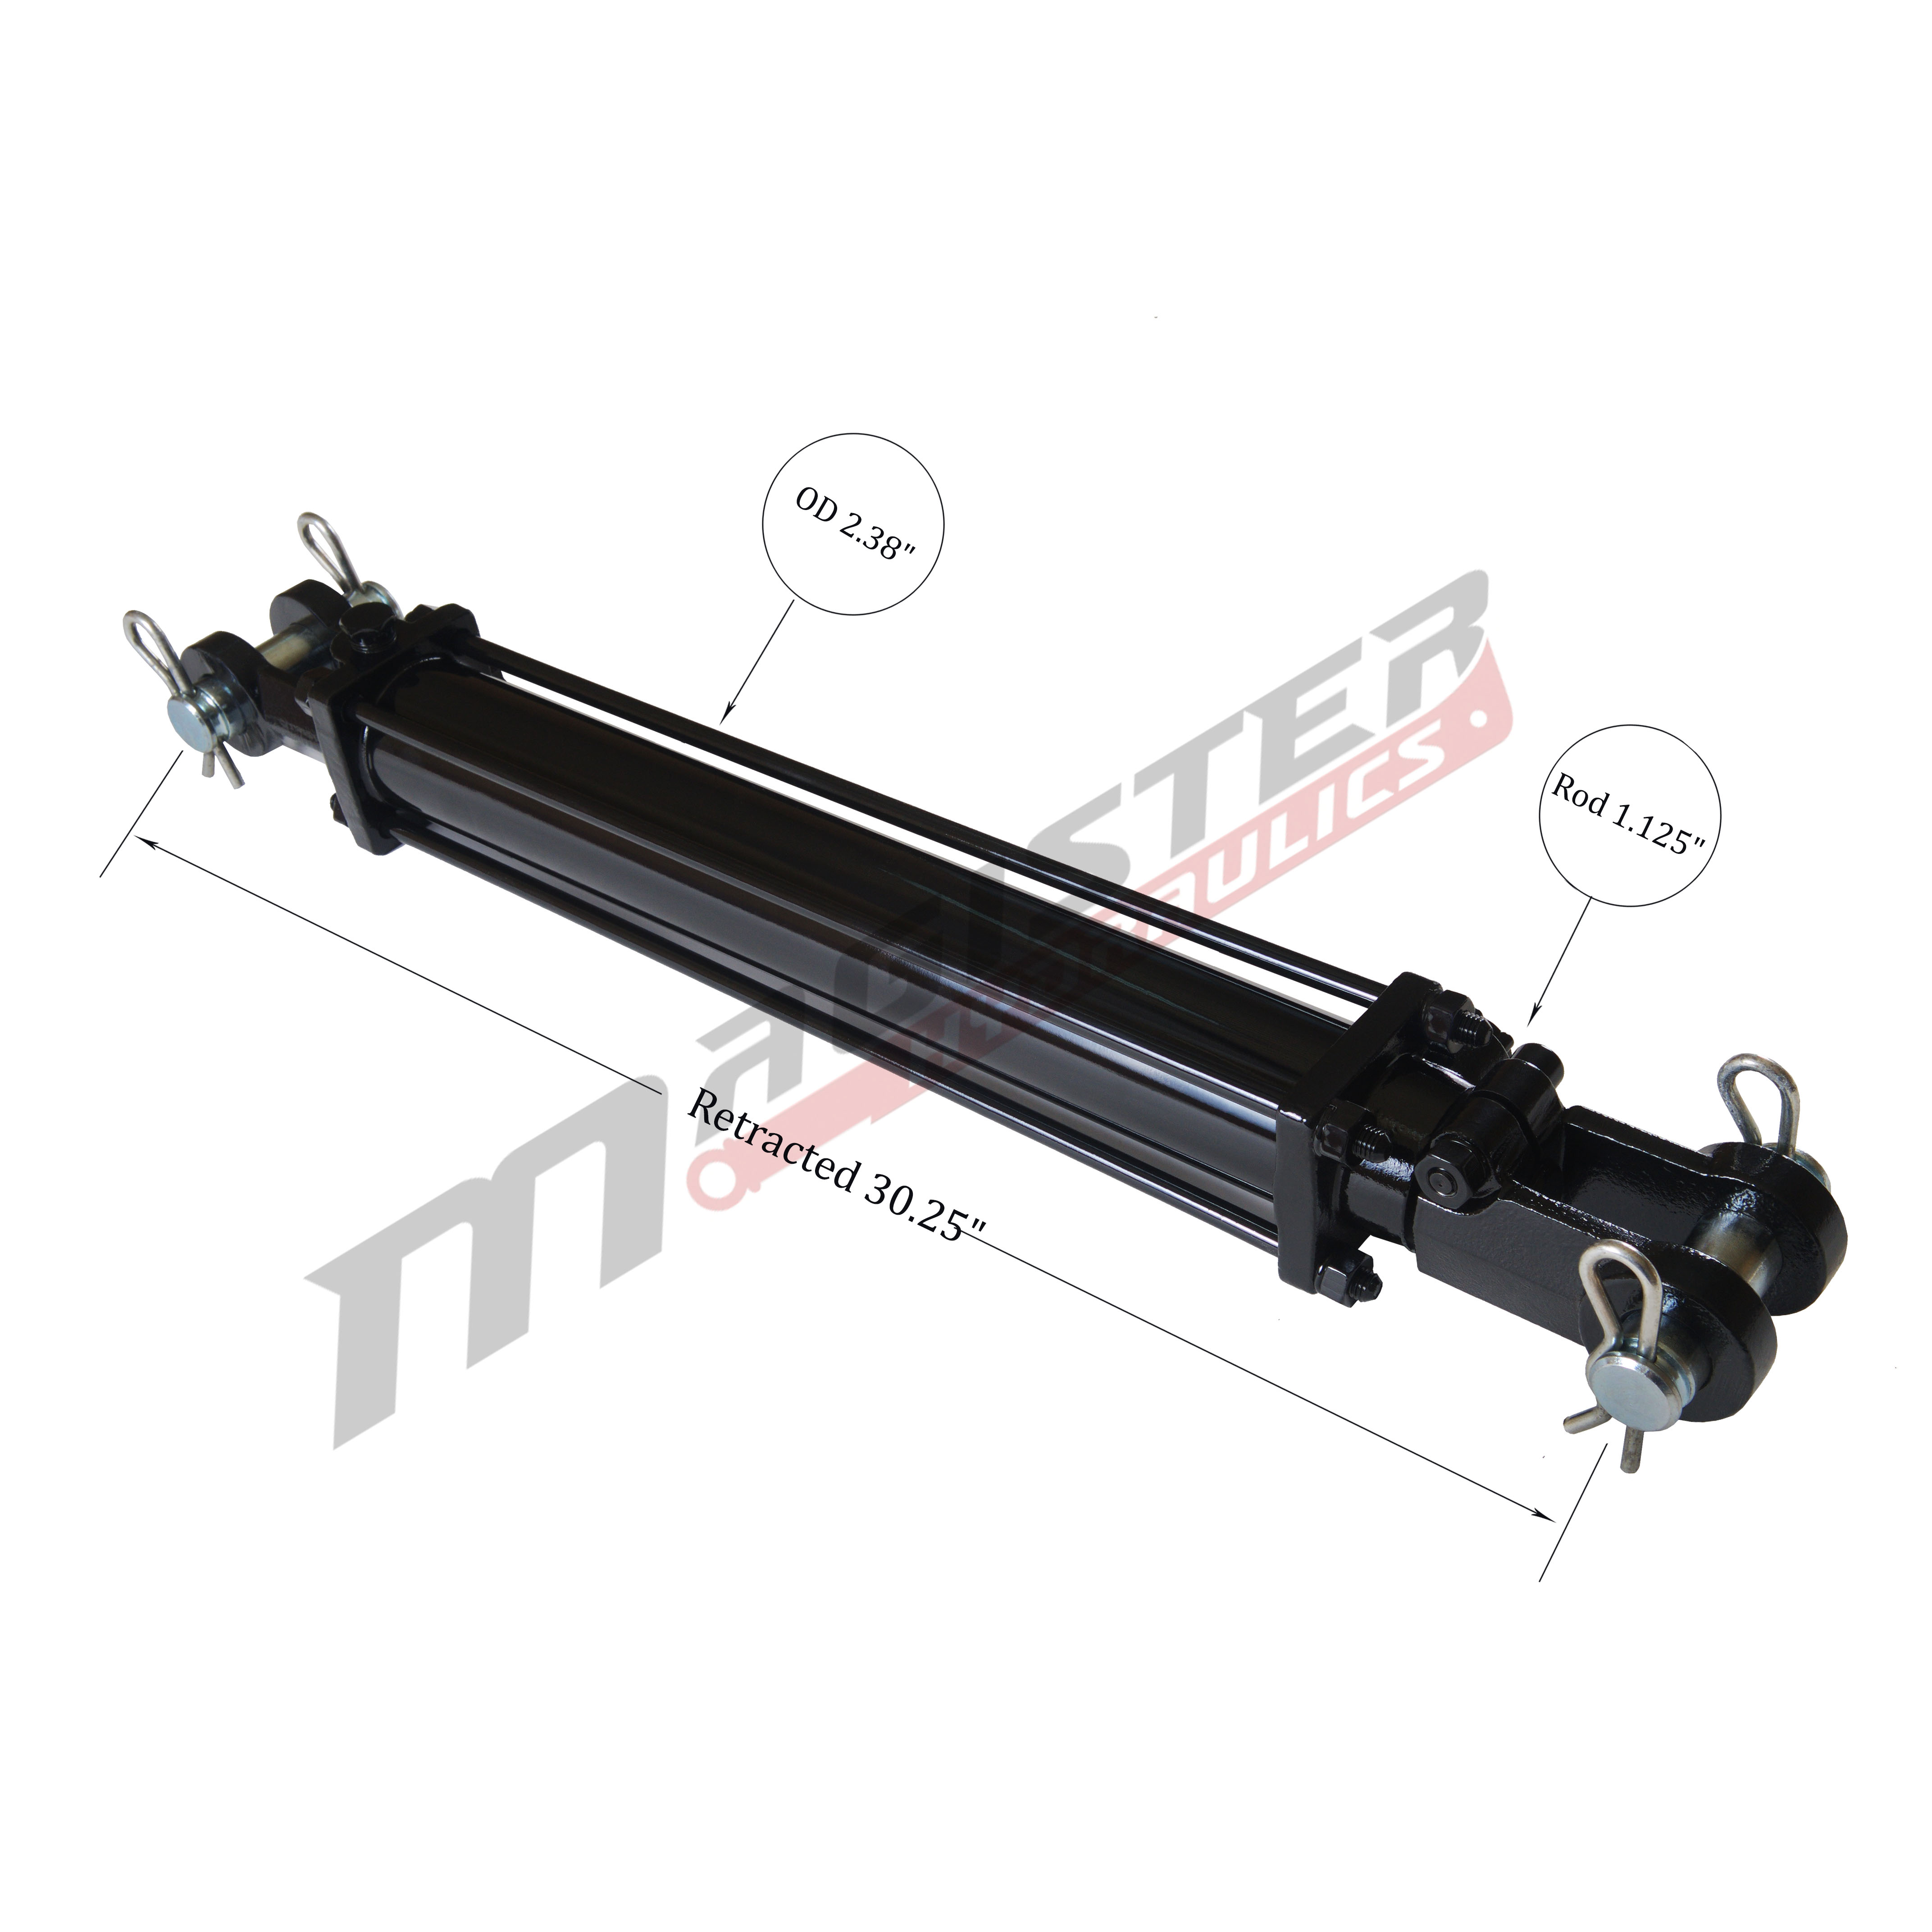 2 bore x 20 stroke hydraulic cylinder, tie rod double acting cylinder | Magister Hydraulics